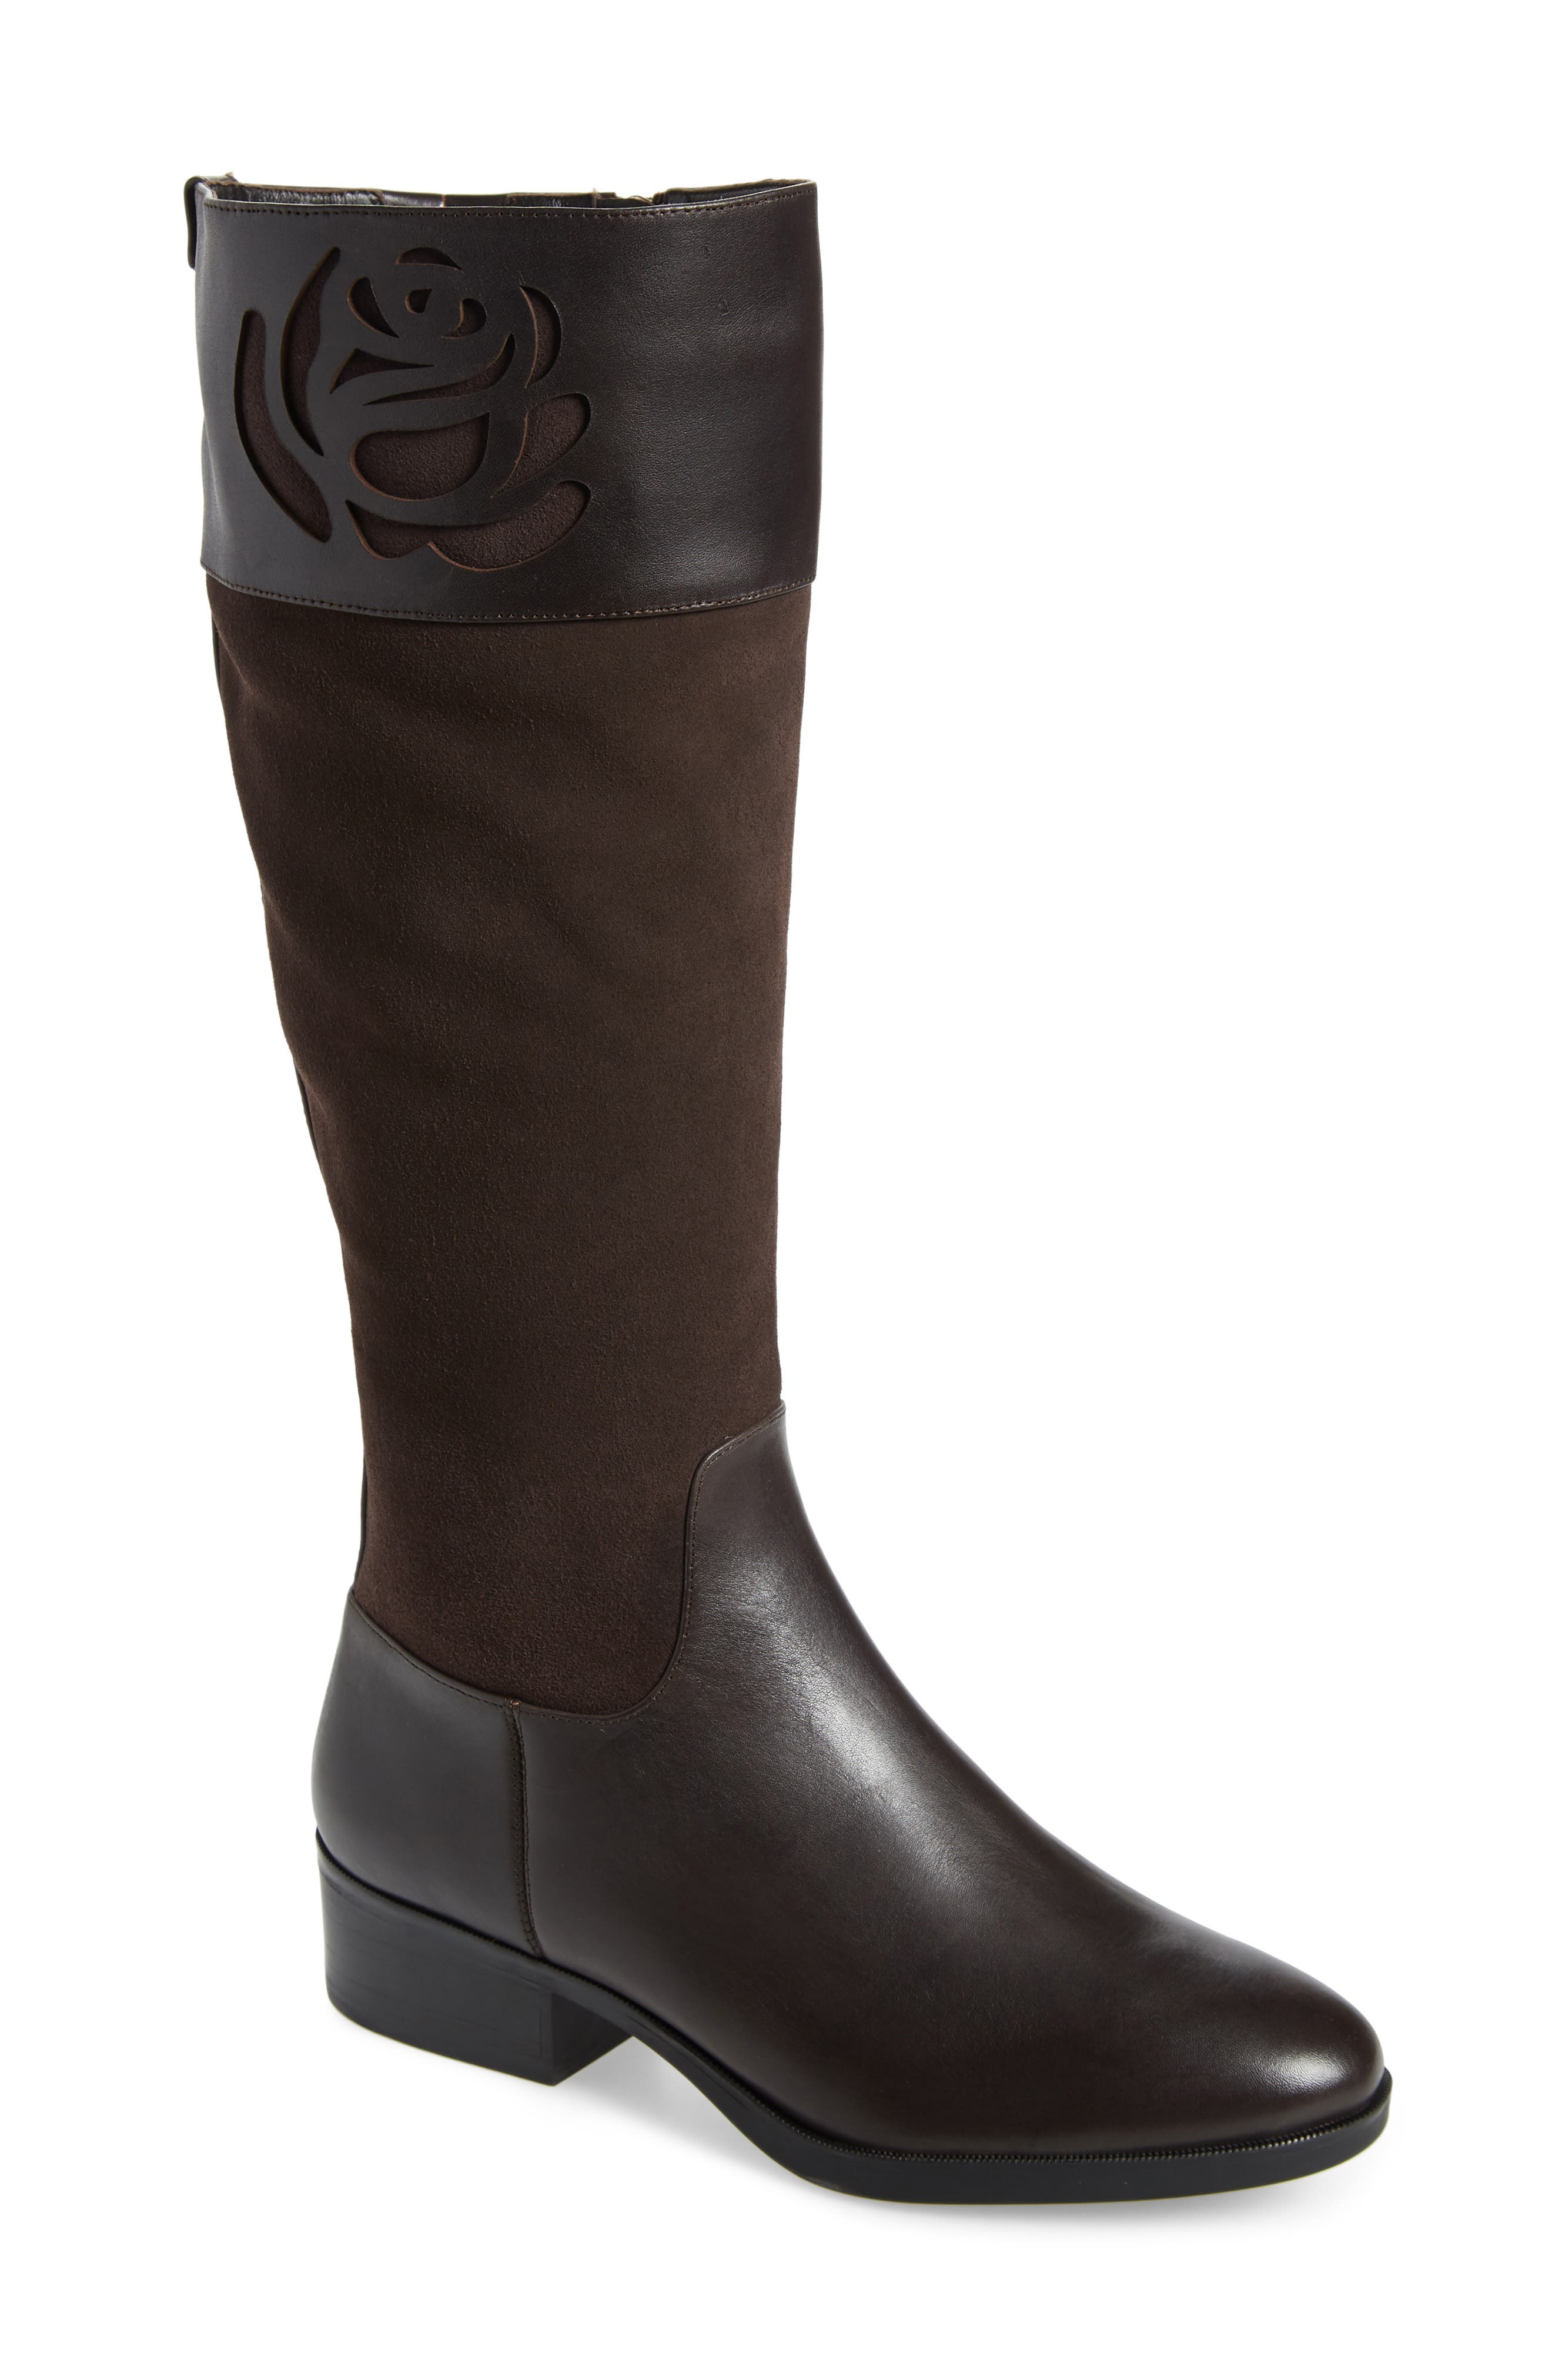 Taryn Rose Georgia Water Resistant Collection Boot- Brown